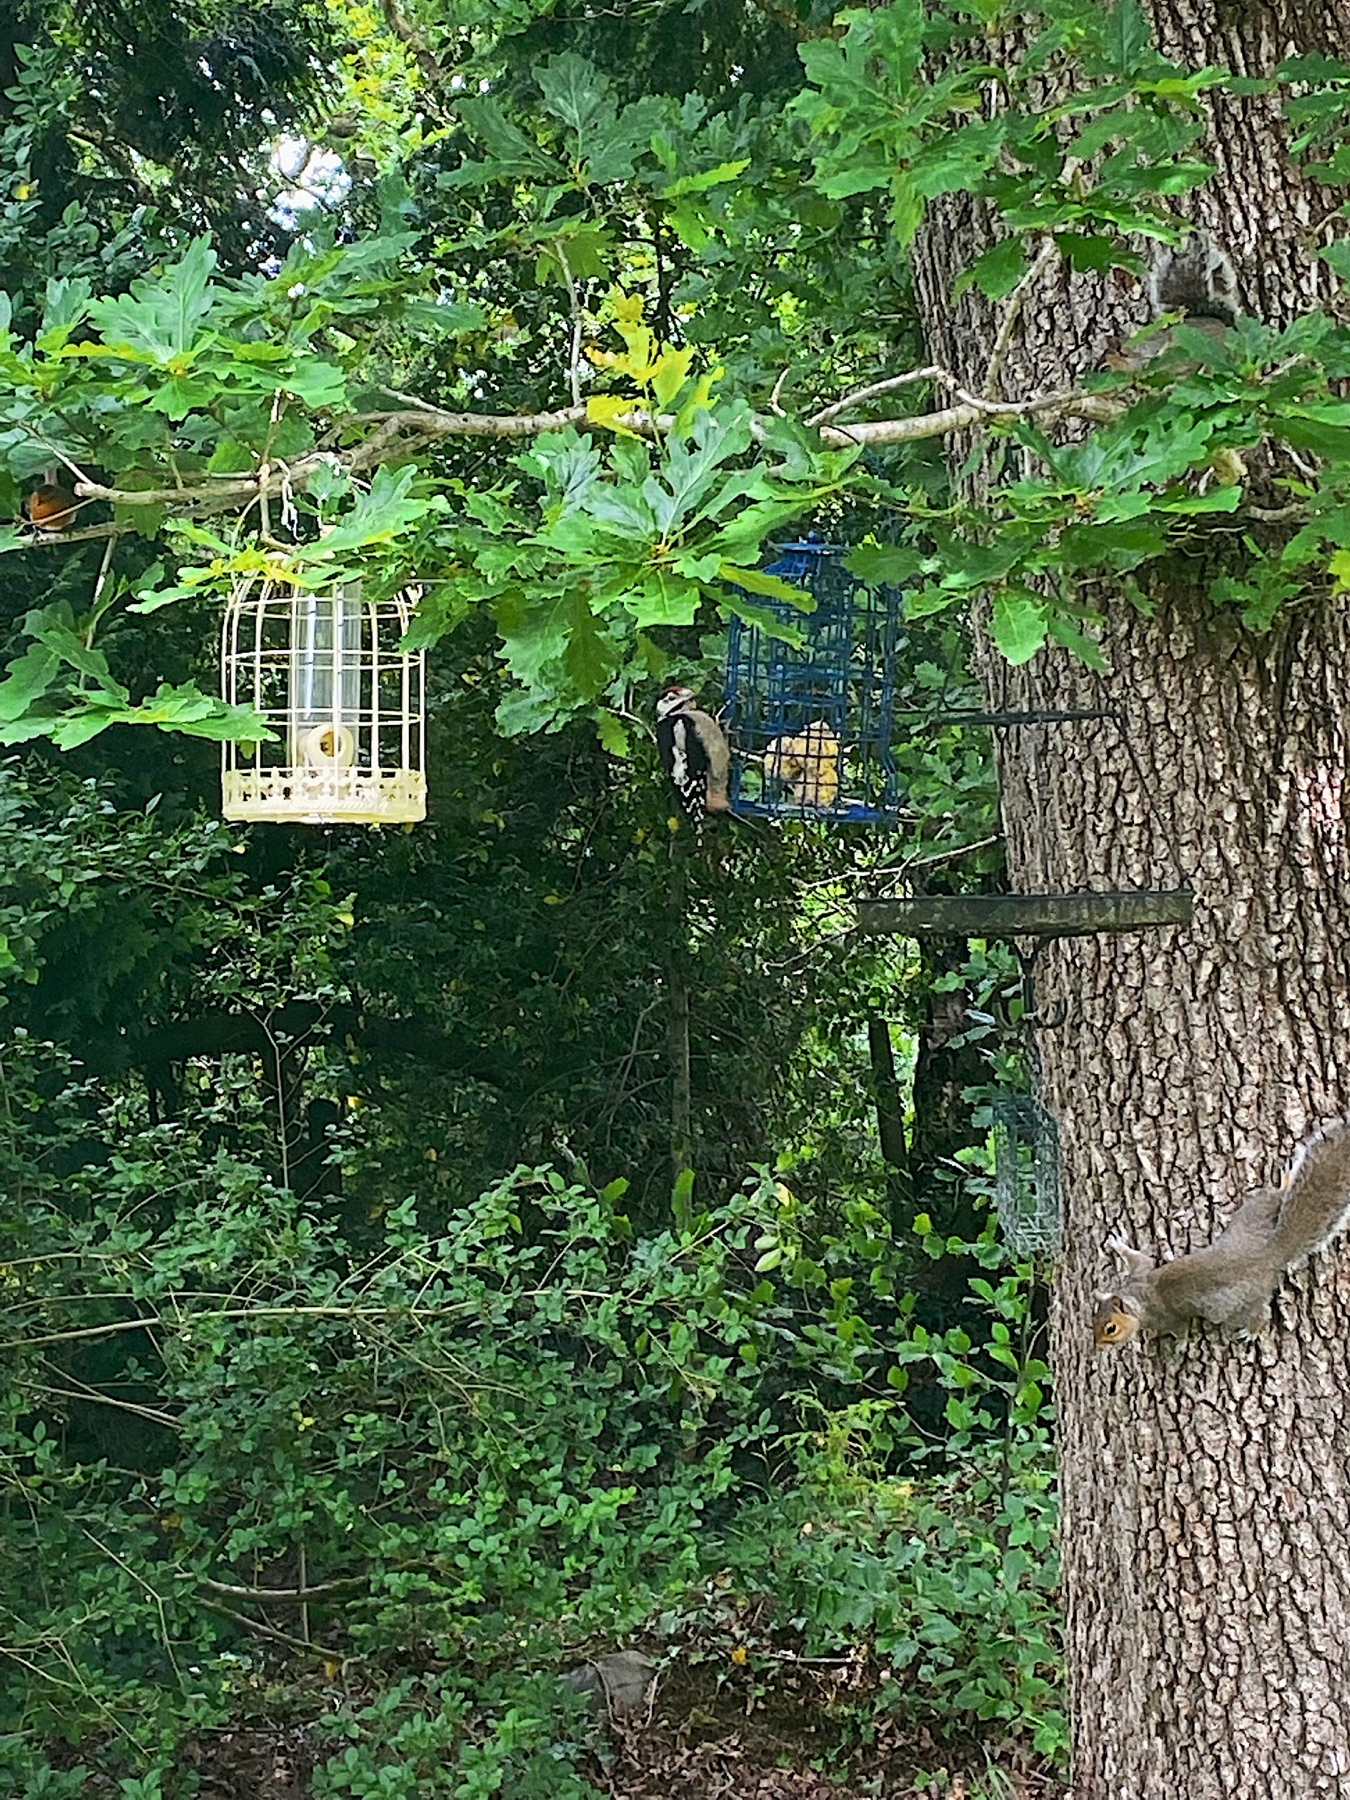 Great Spotted Woodpecker at a bird feeder